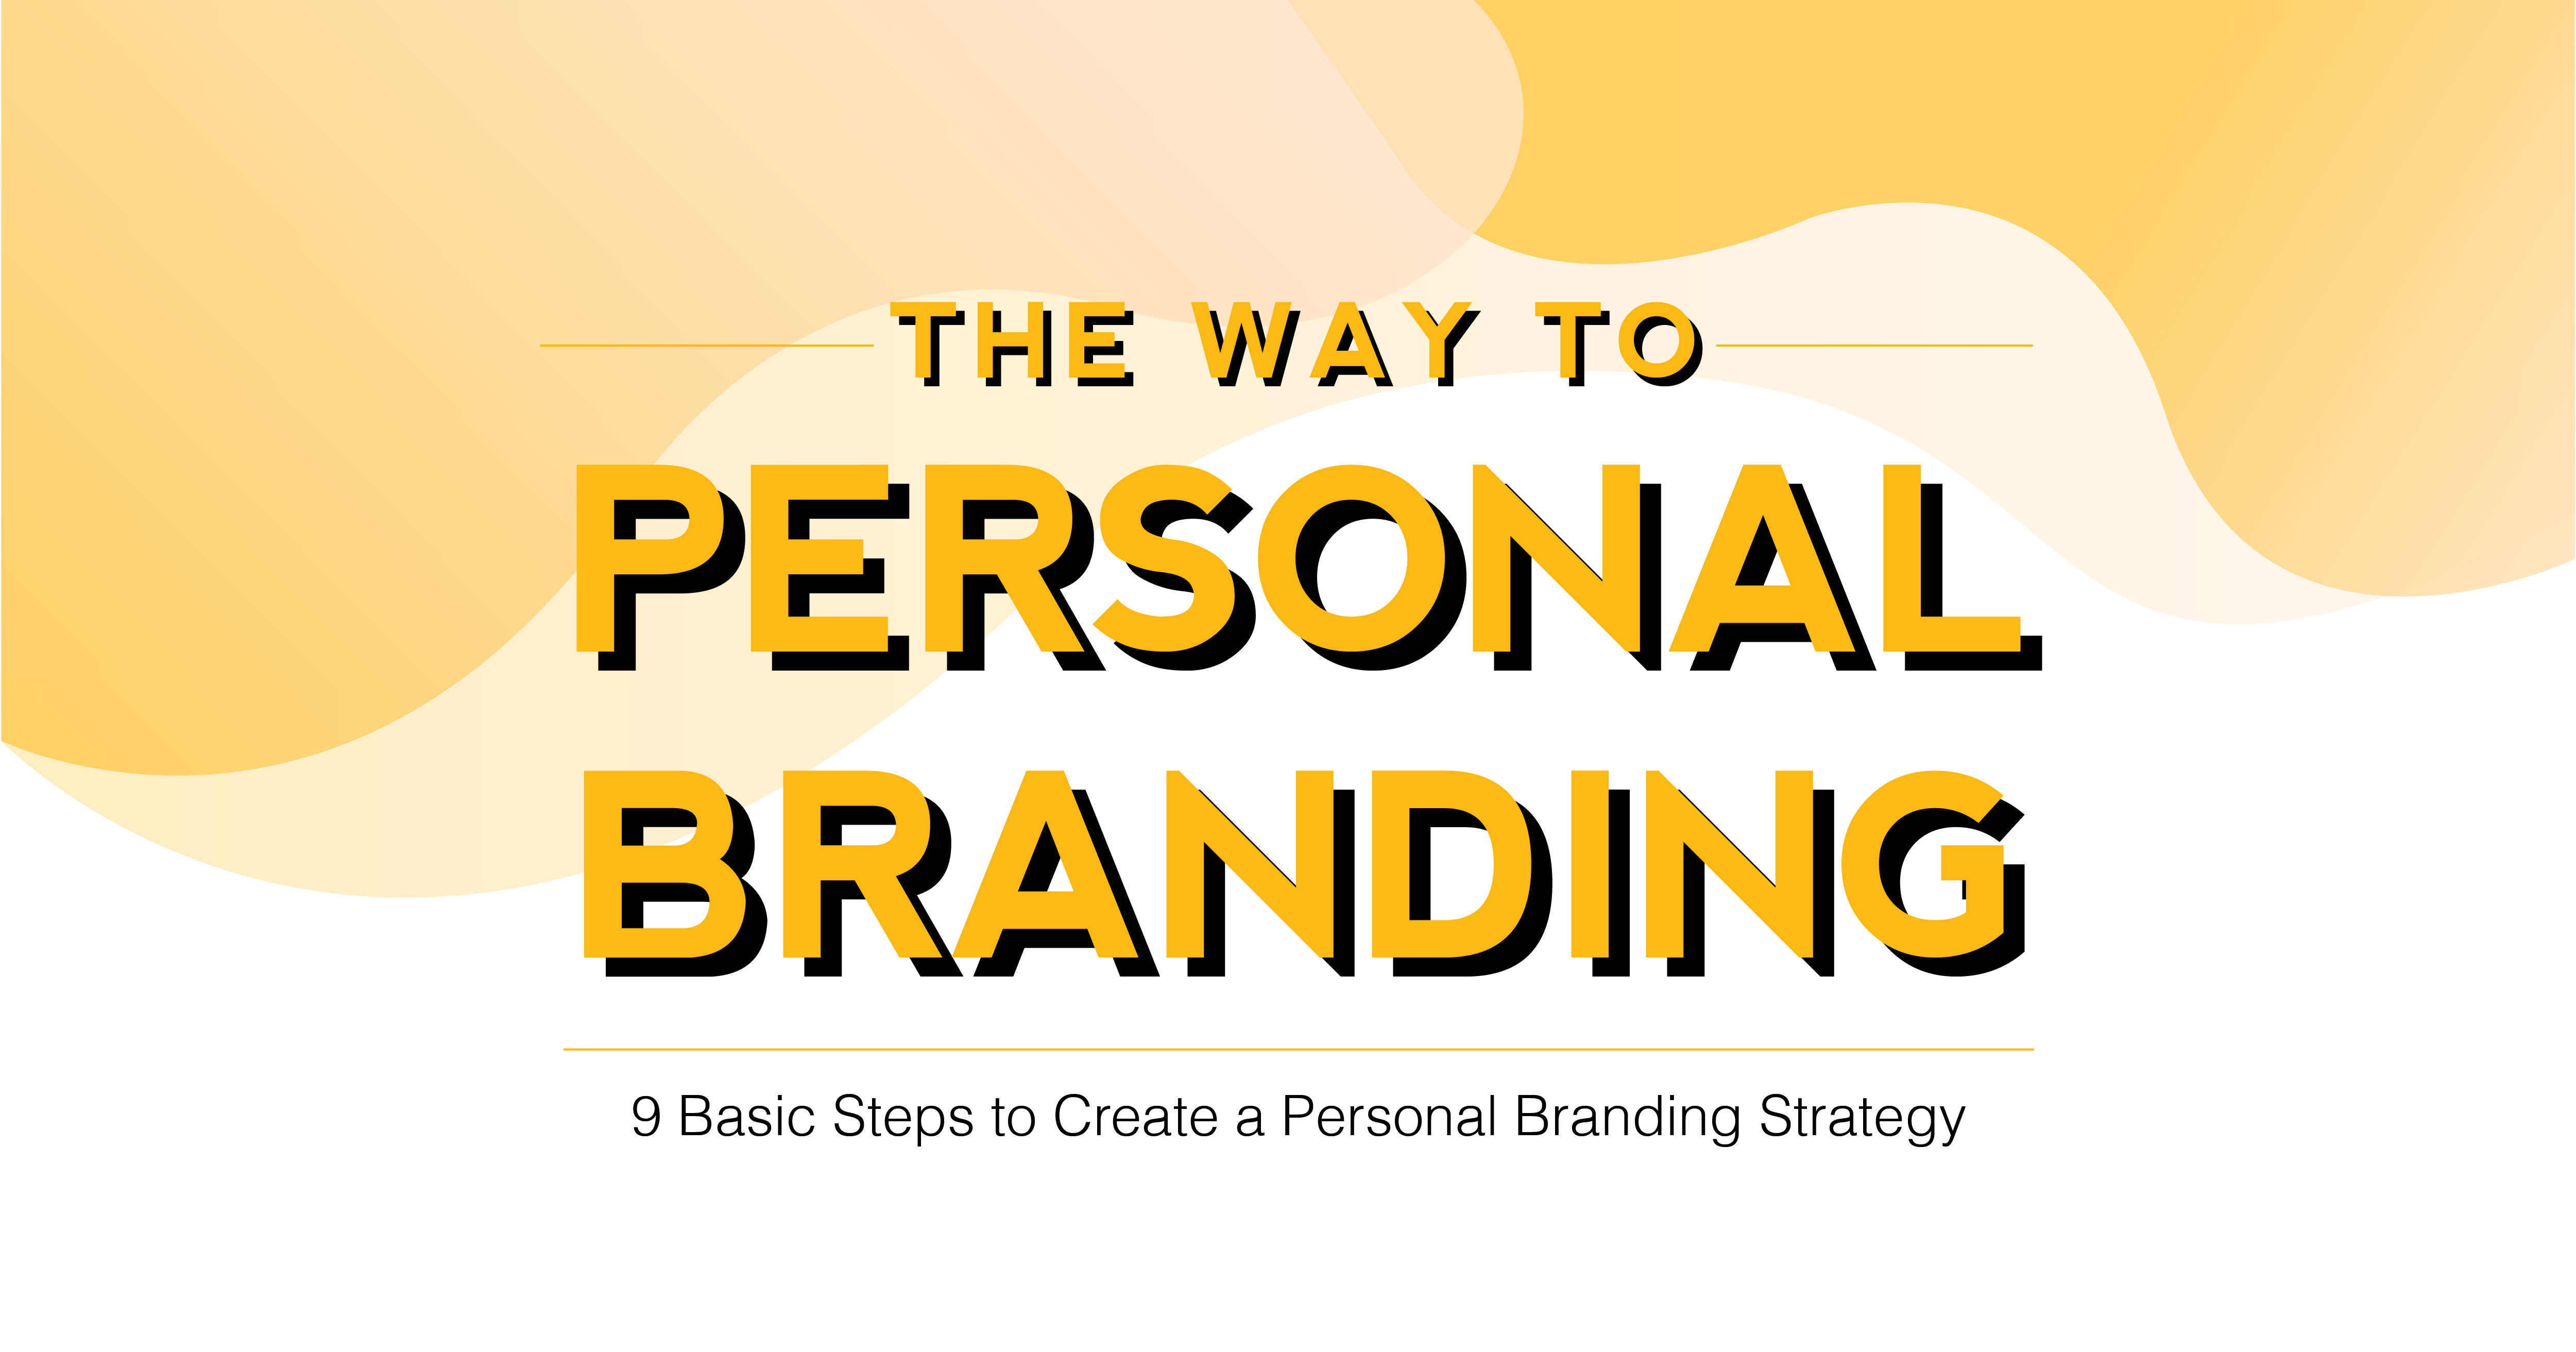 The Way To Personal Branding